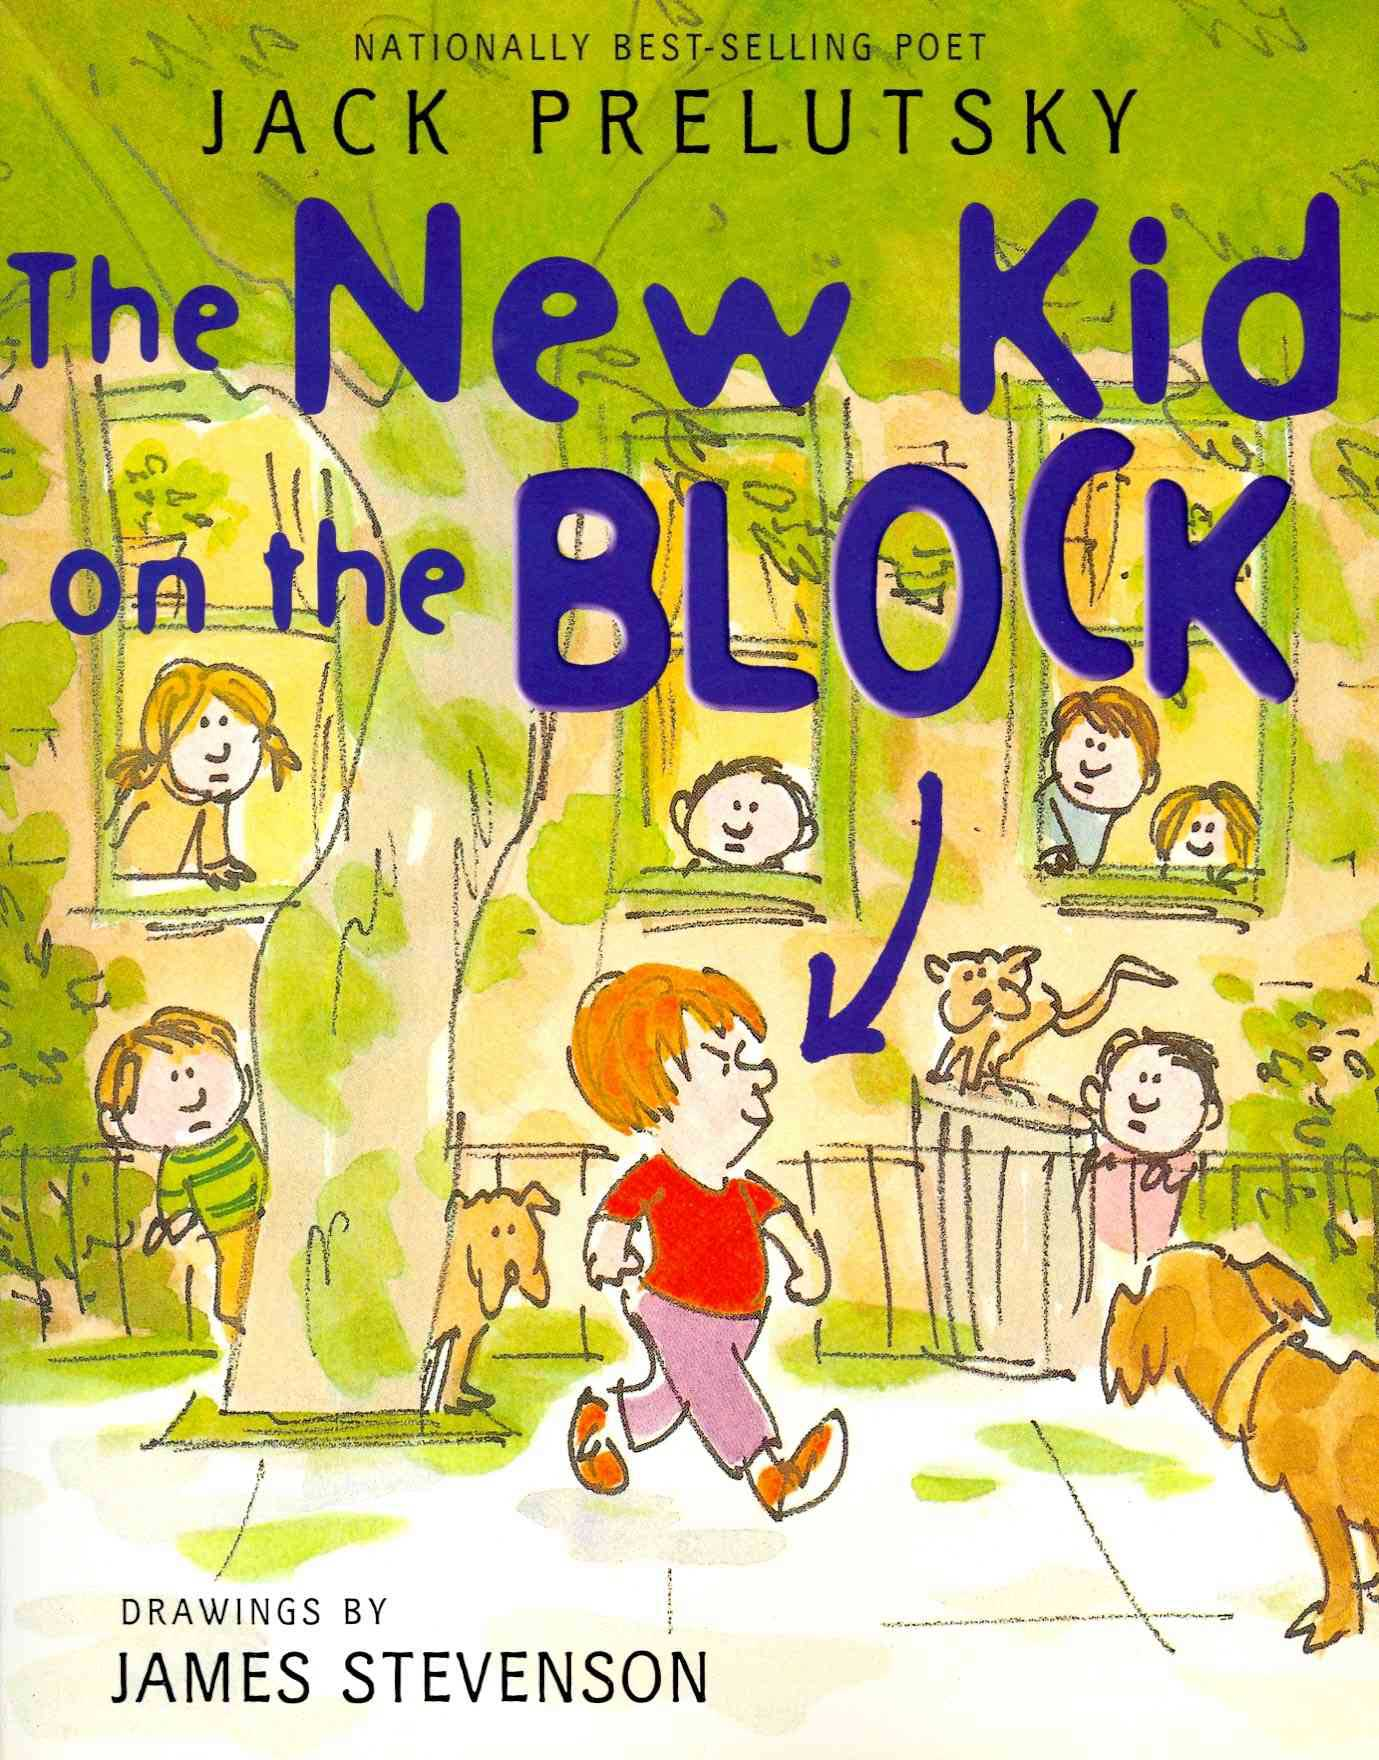 The New Kid on the Block, by Jack Prelutsky, illustrations by James Stevenson.                                                                                                                            Poems full of sonic play and surreal imagery, taking on subject matters like jellyfish stew and a bouncing mouse.                                                                                                                            Buy now: The New Kid on the Block